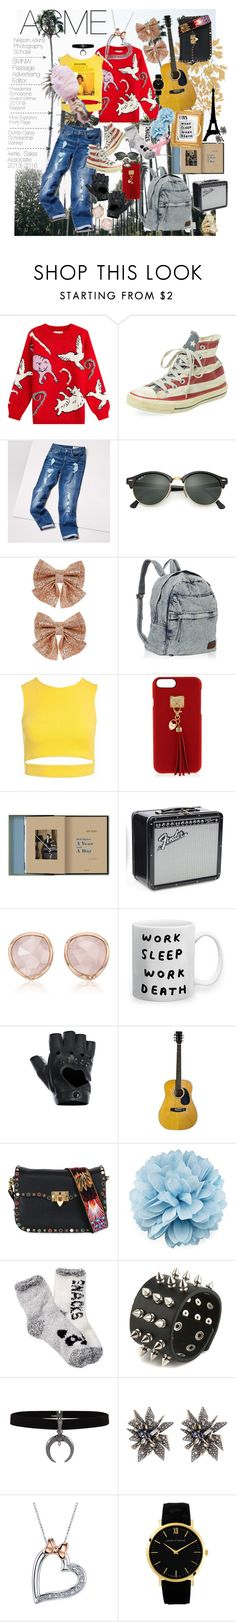 """""""Acme Application"""" by claire-marley on Polyvore featuring Paul & Joe, Converse, Tommy Hilfiger, Ray-Ban, Monsoon, Sans Souci, Henri Bendel, Columbia, Monica Vinader and FRACOMINA"""